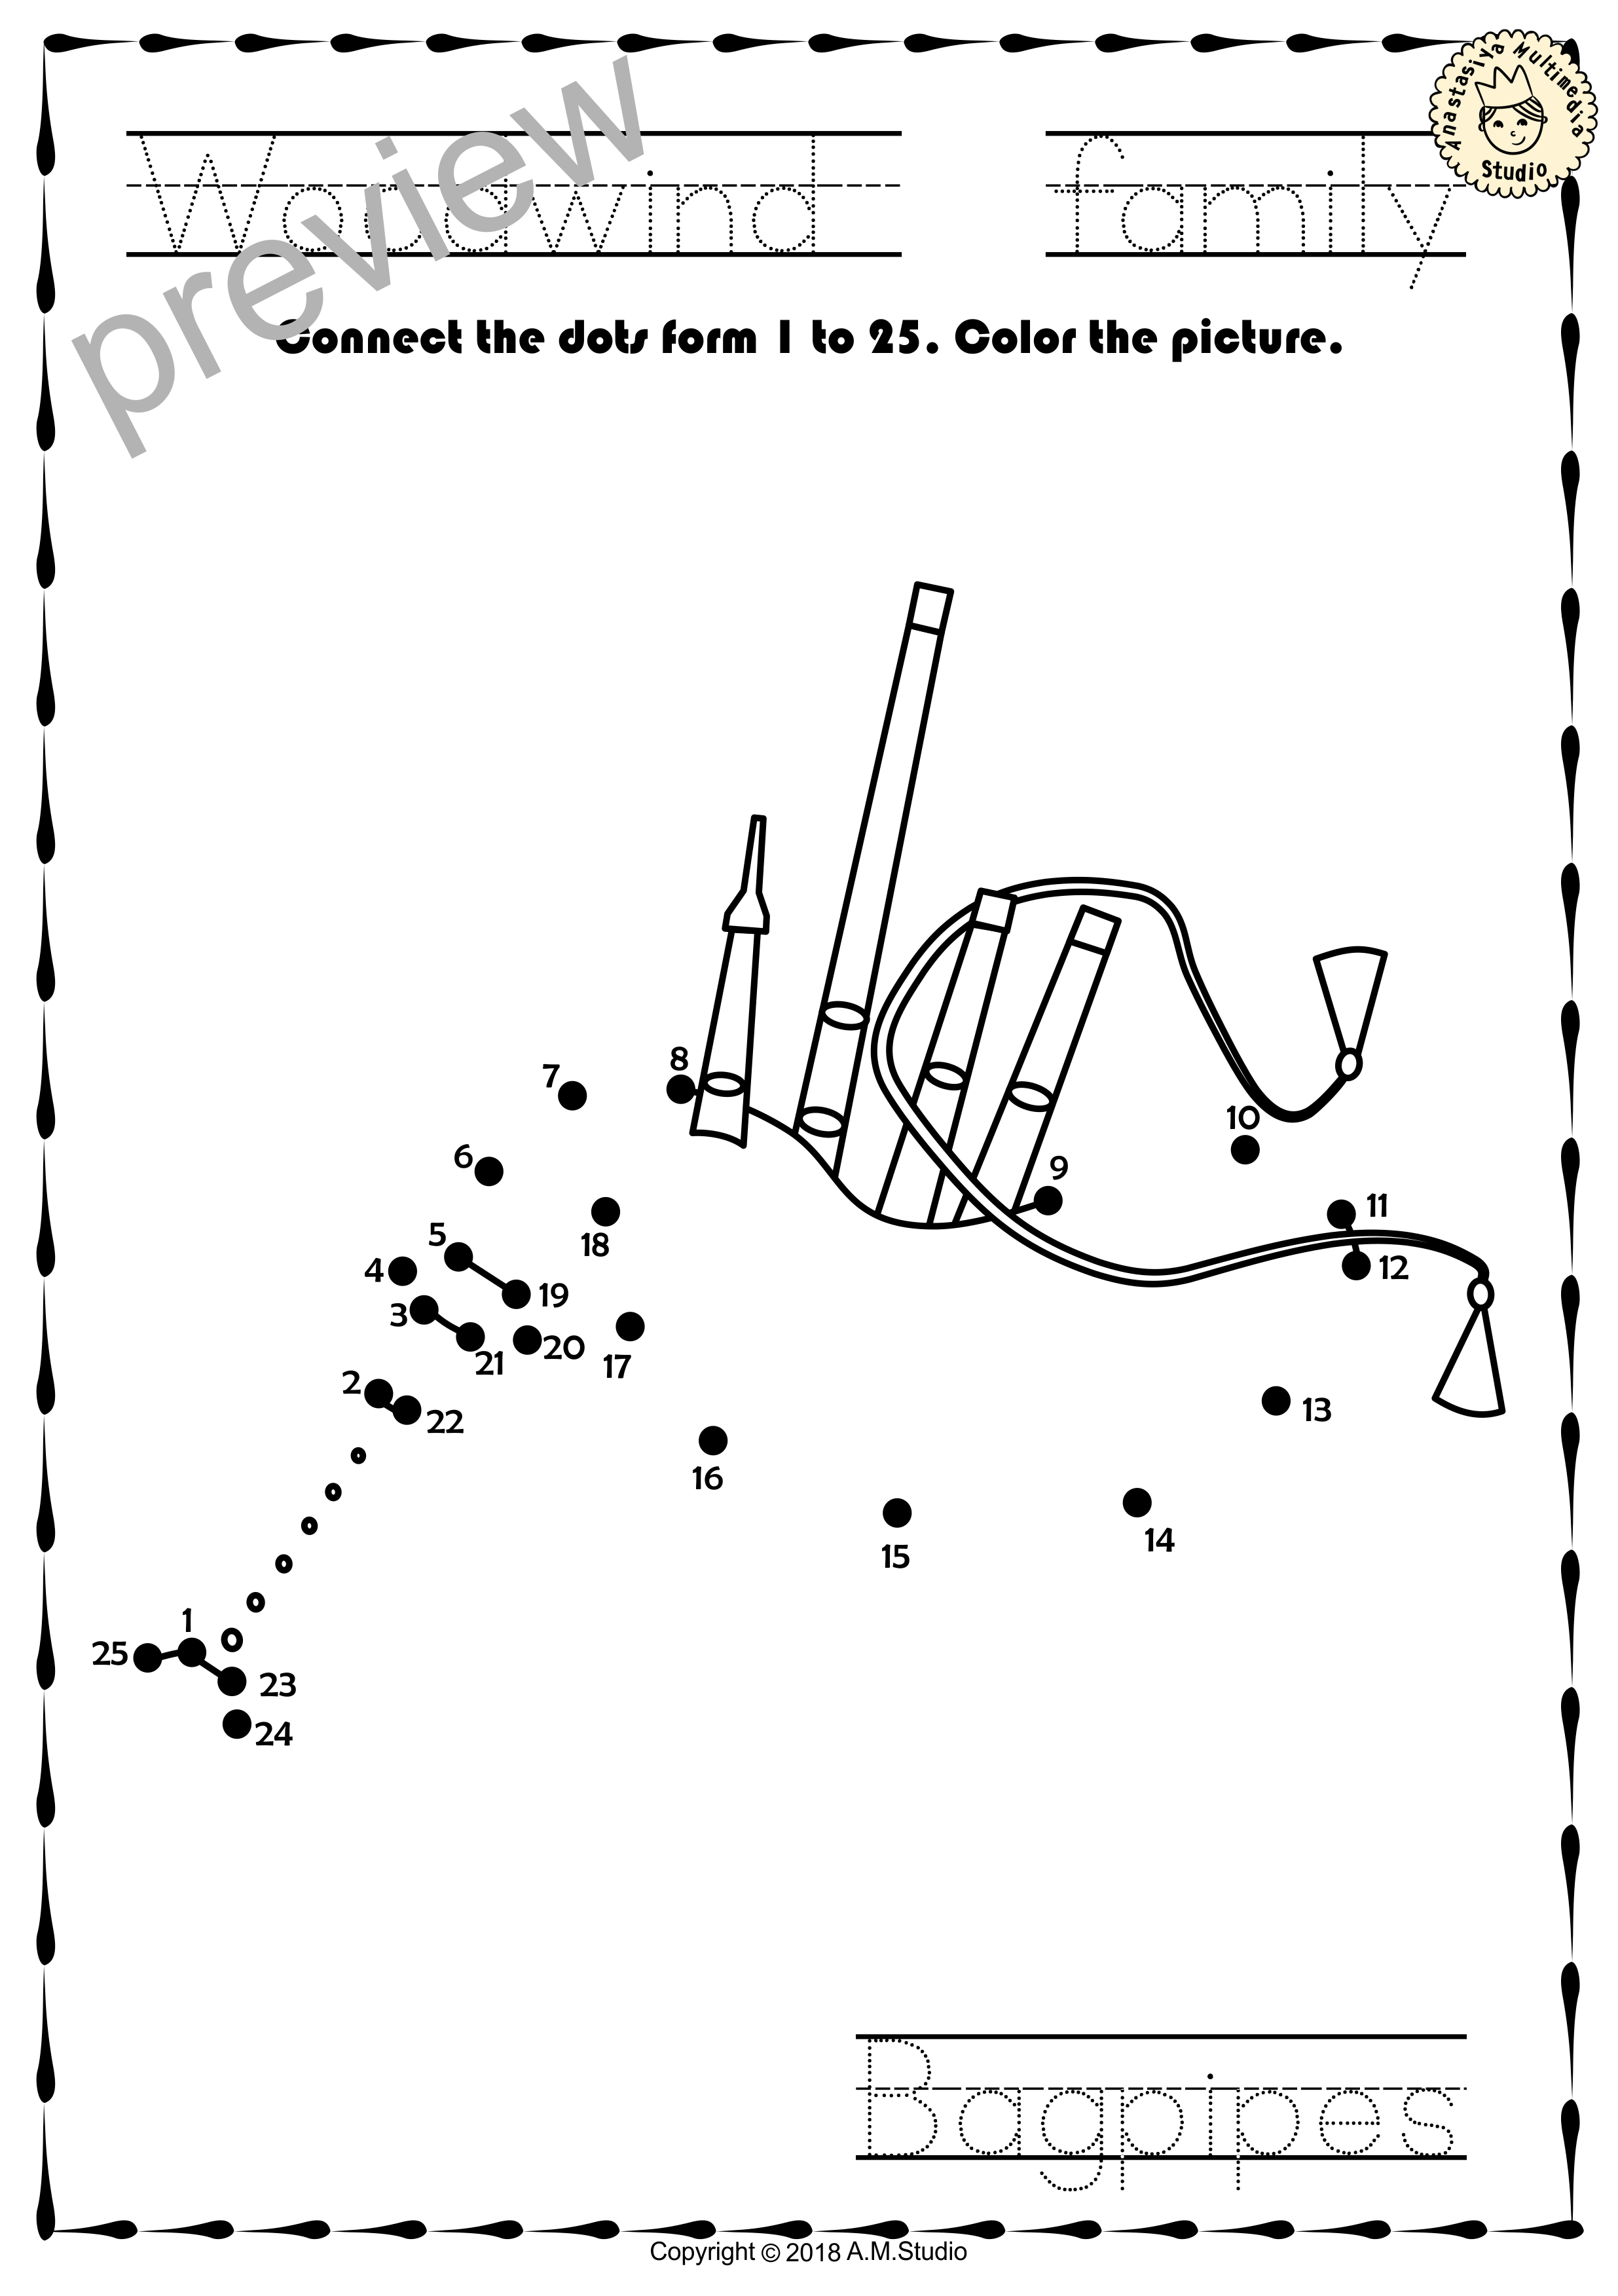 Worksheets Instrument Worksheets woodwind instruments dot to worksheets this file in pdf form contains 15 wo